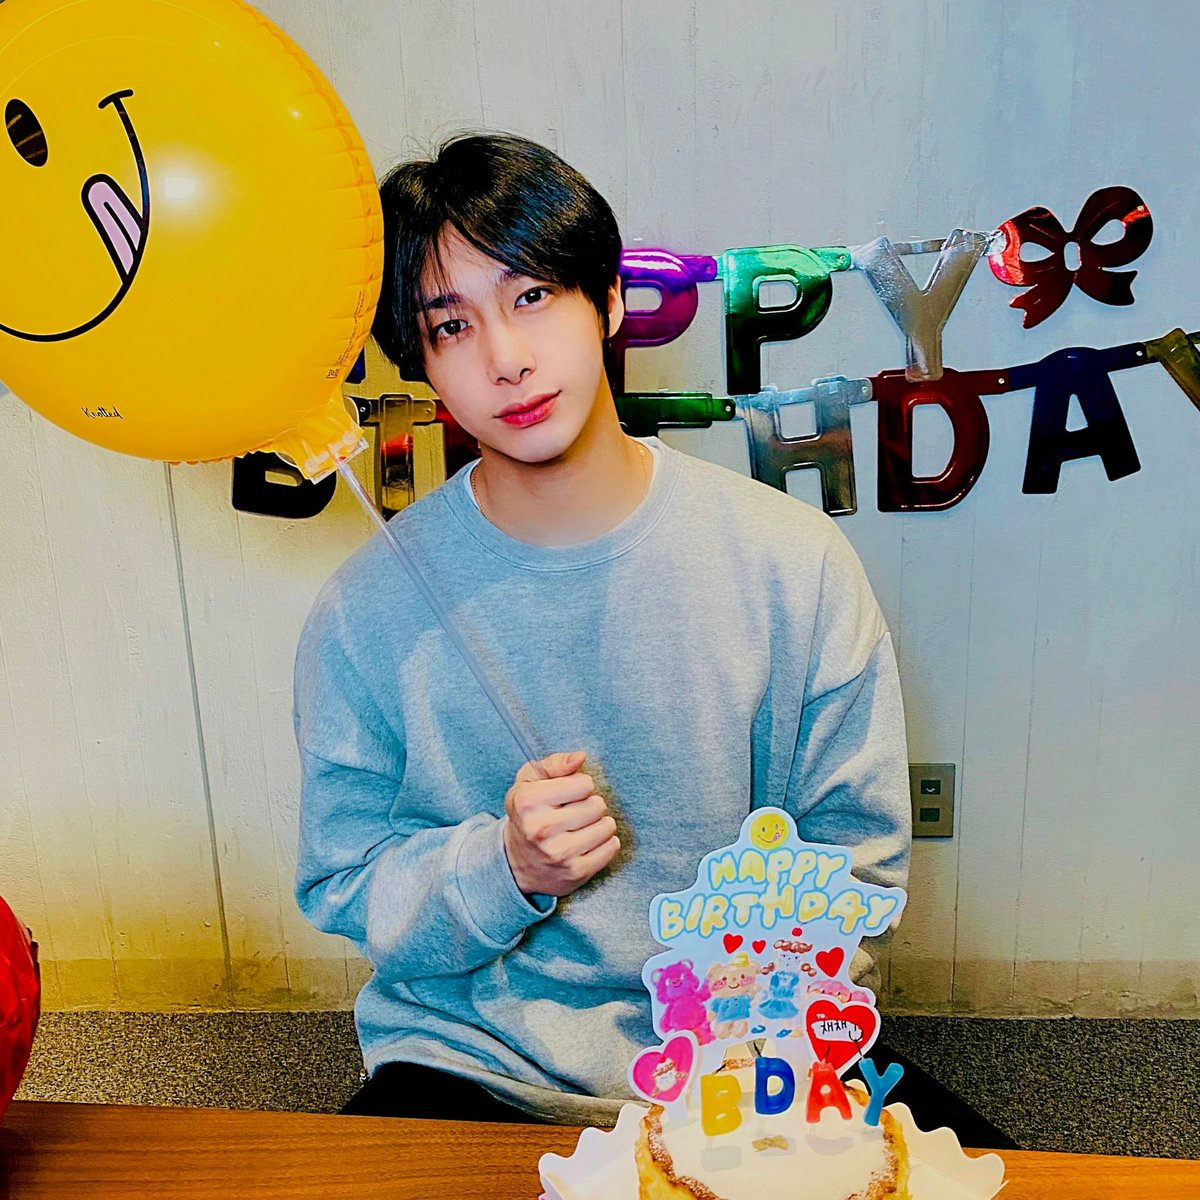 210115 15 January 21 - Hyungwon's Birthday   #HBDtoHYUNGWON #형원이란_다정함이_내린_날